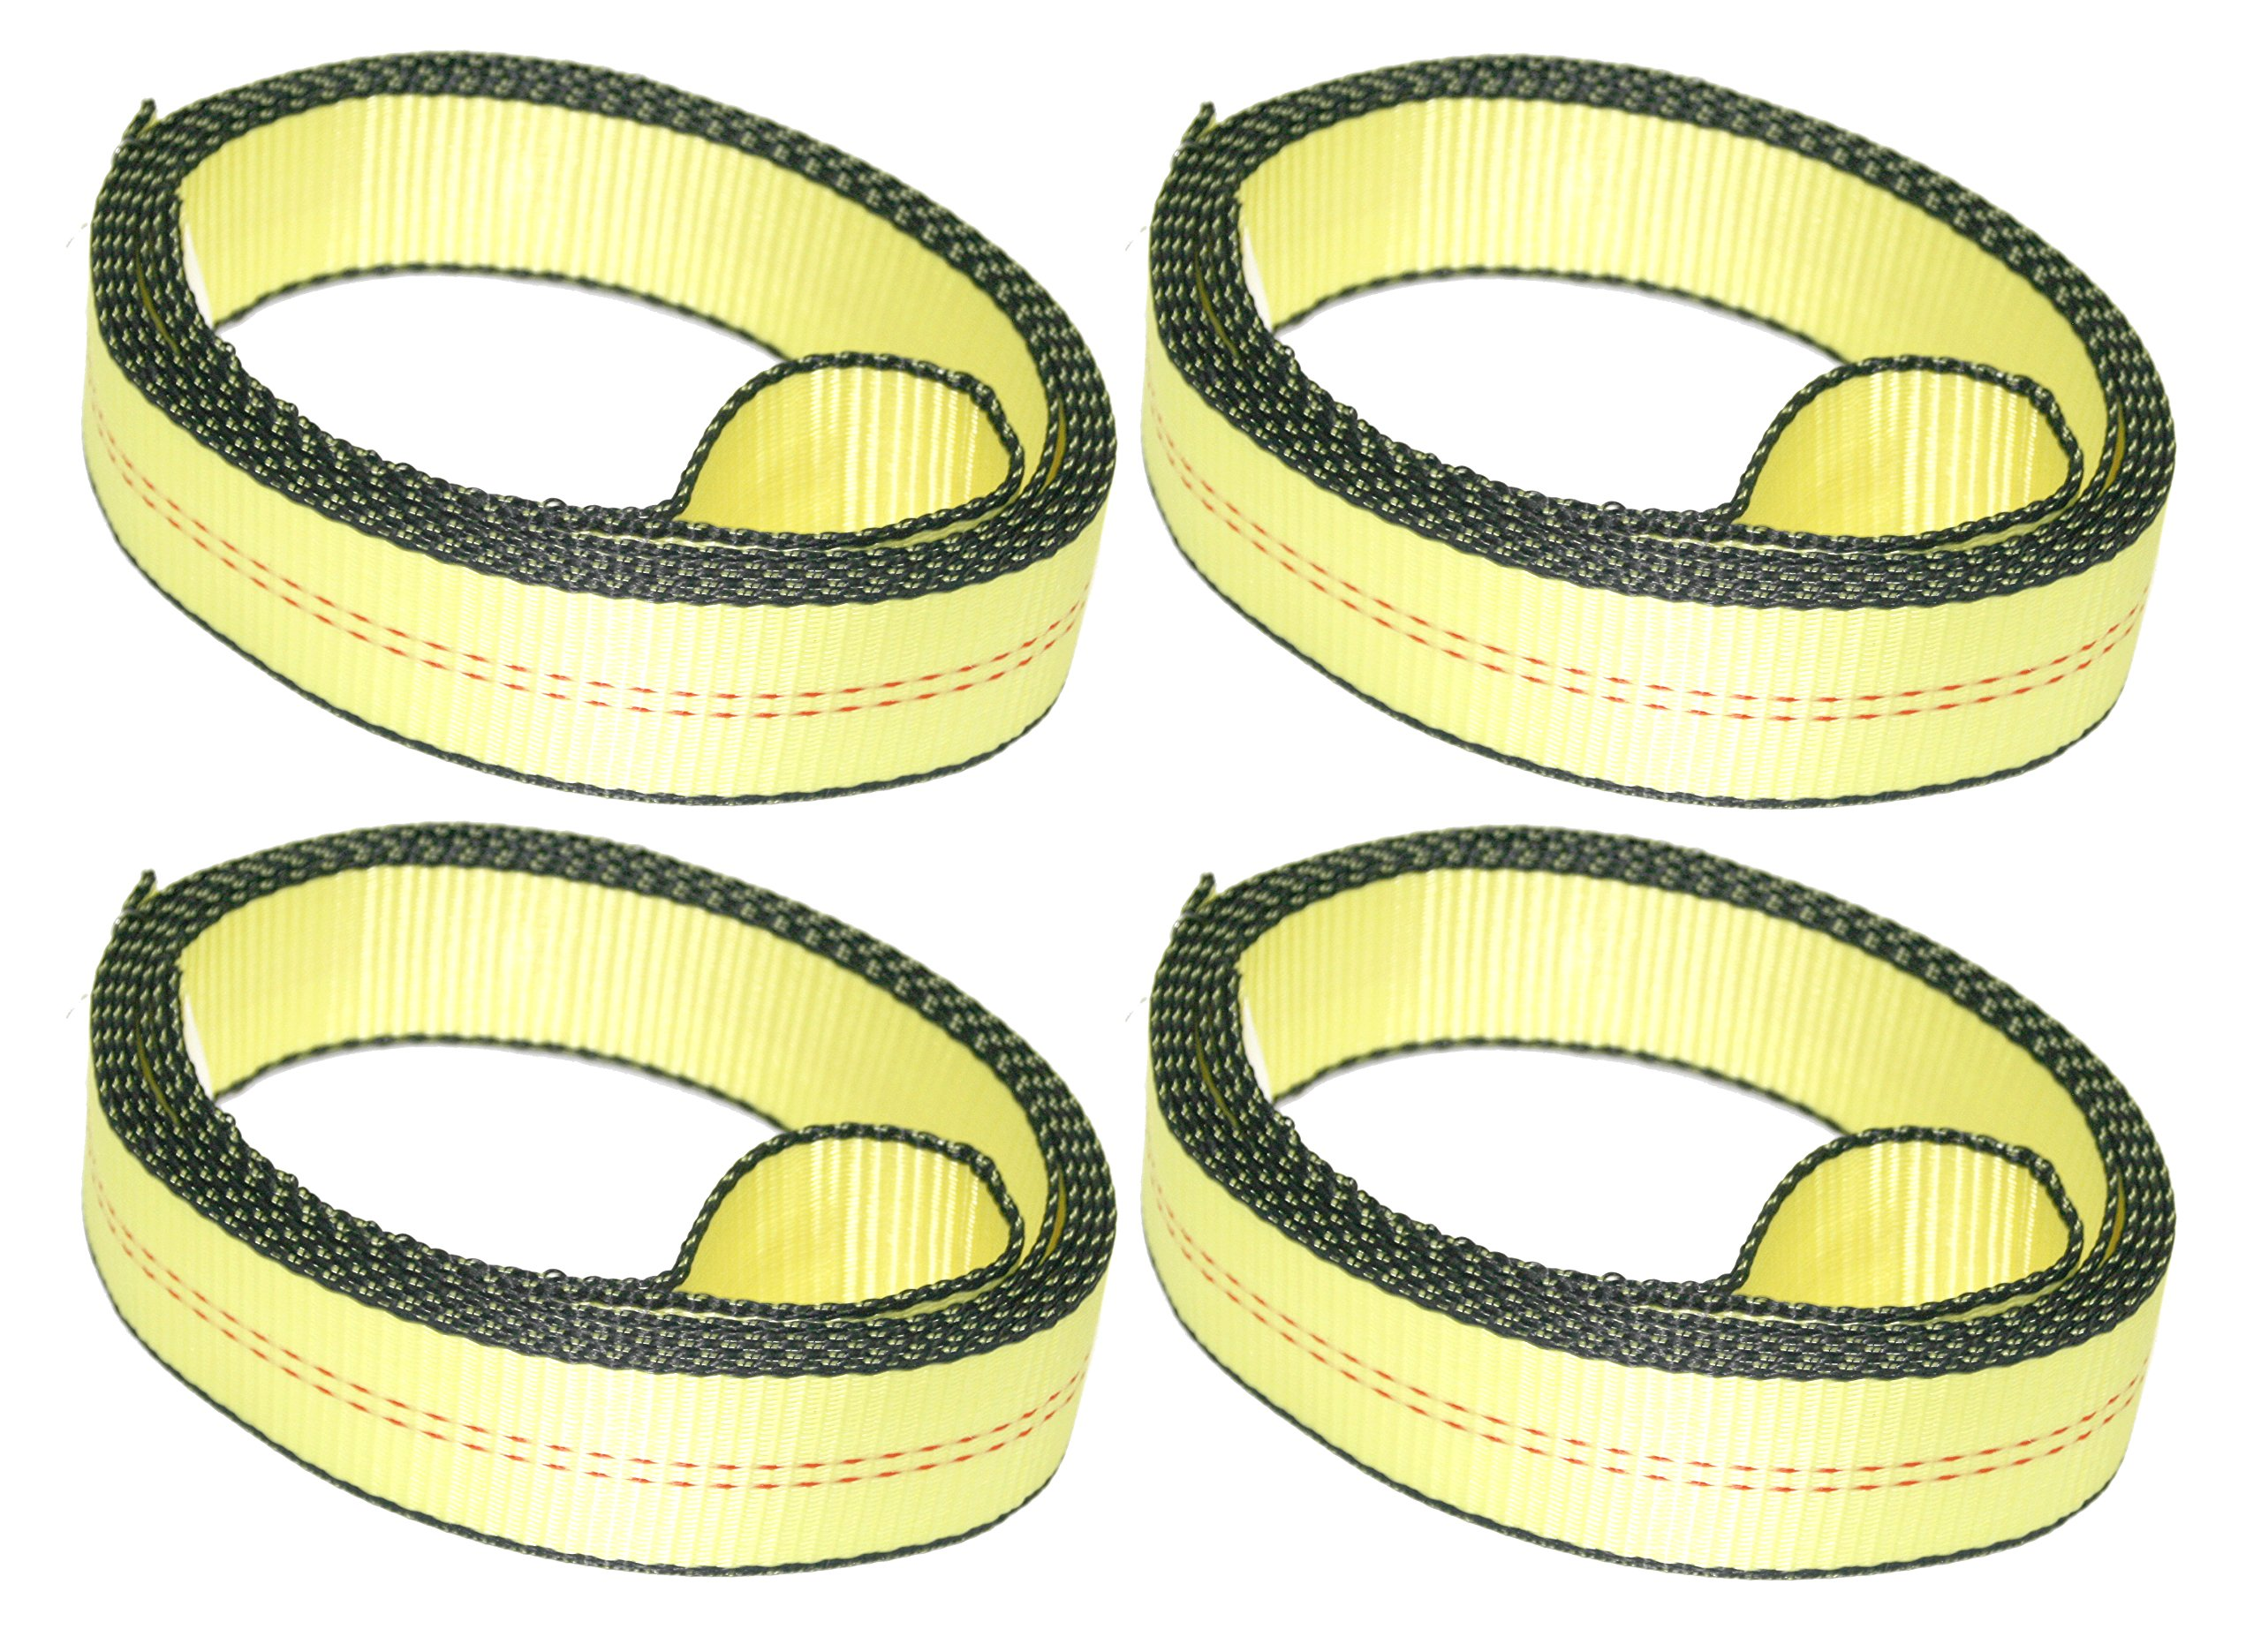 "DKG-307 Over The Tire Car Tie Down Straps for Trailers – 2"" x 10' Lasso Car Cargo Straps with Soft Sewn Loop – Reliable Auto Hauling Wedge Trailer Tie Downs (4 Pack)"